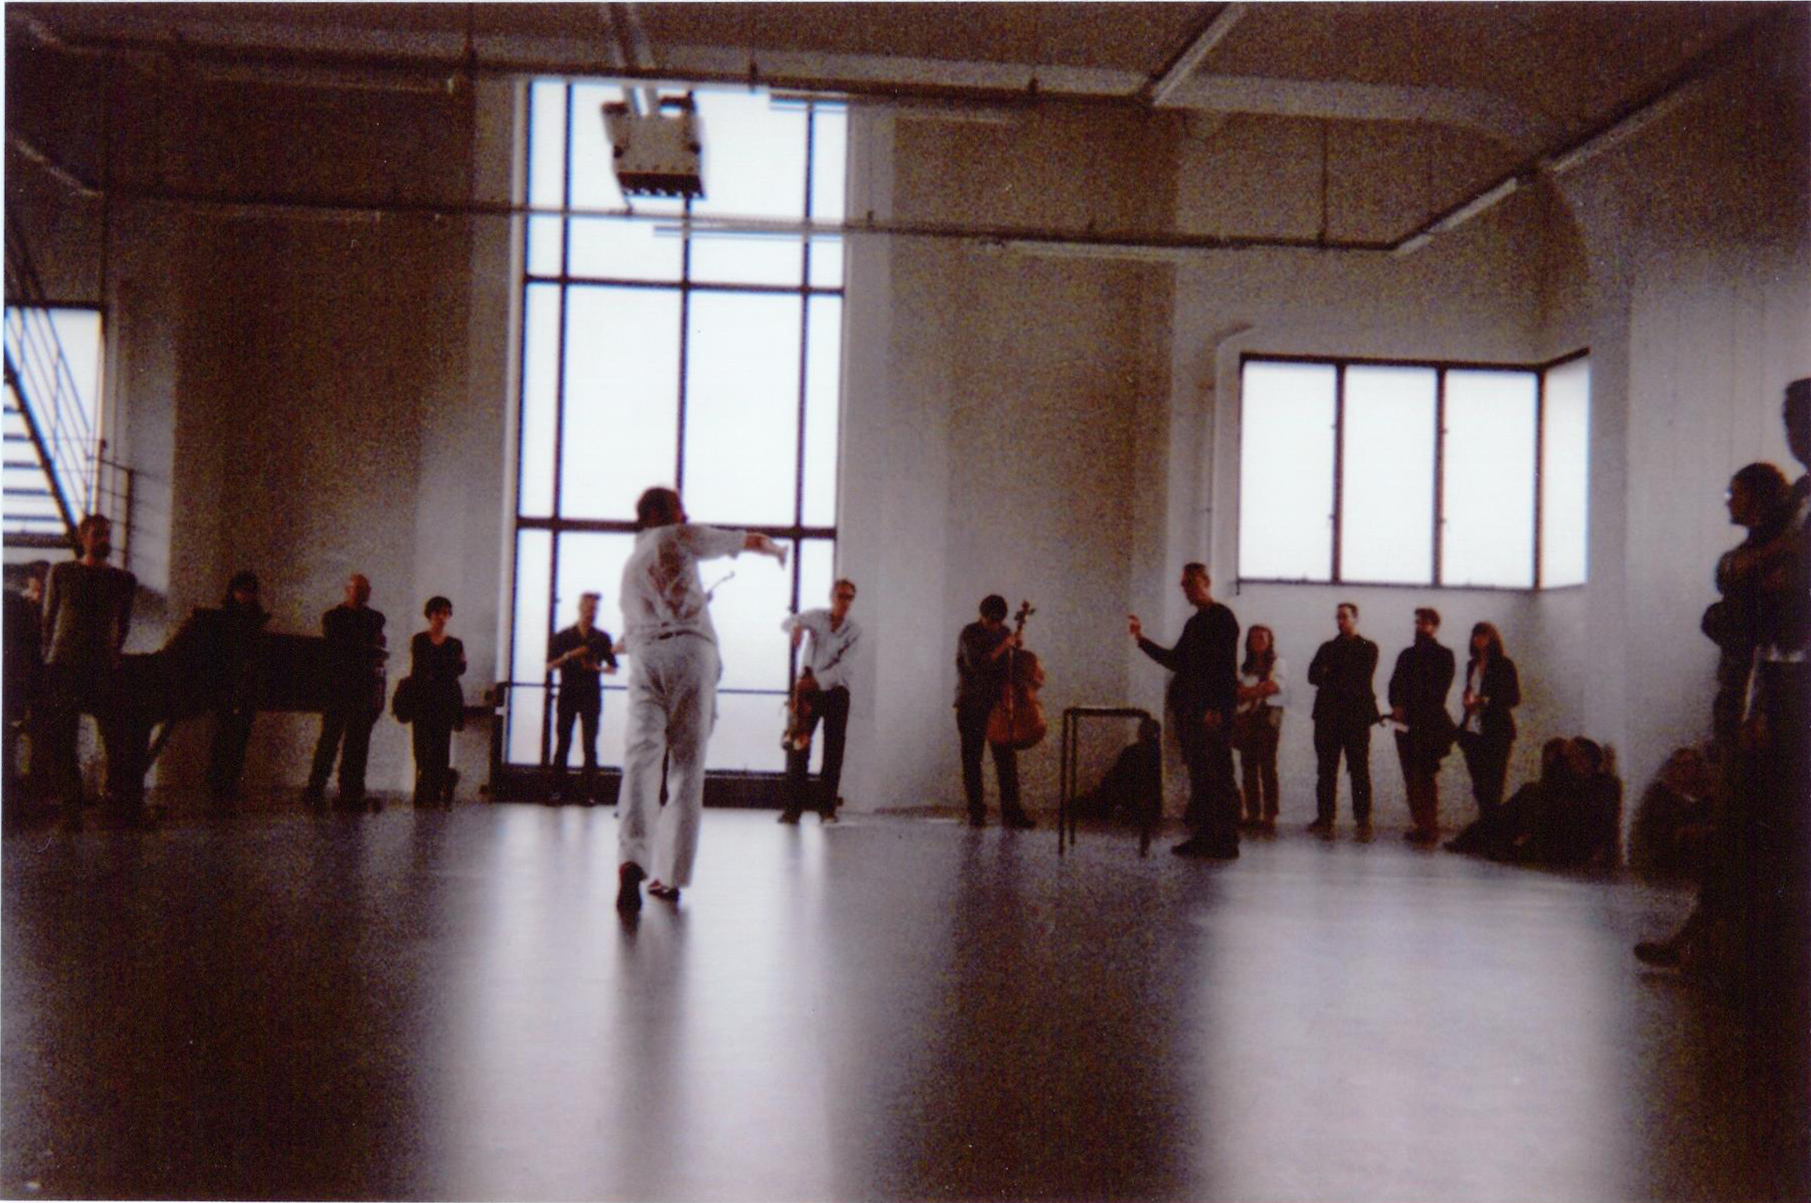 Work/Travail/Arbeid by Anne Teresa De Keersmaeker, WIEL, Girls Heart Brussels